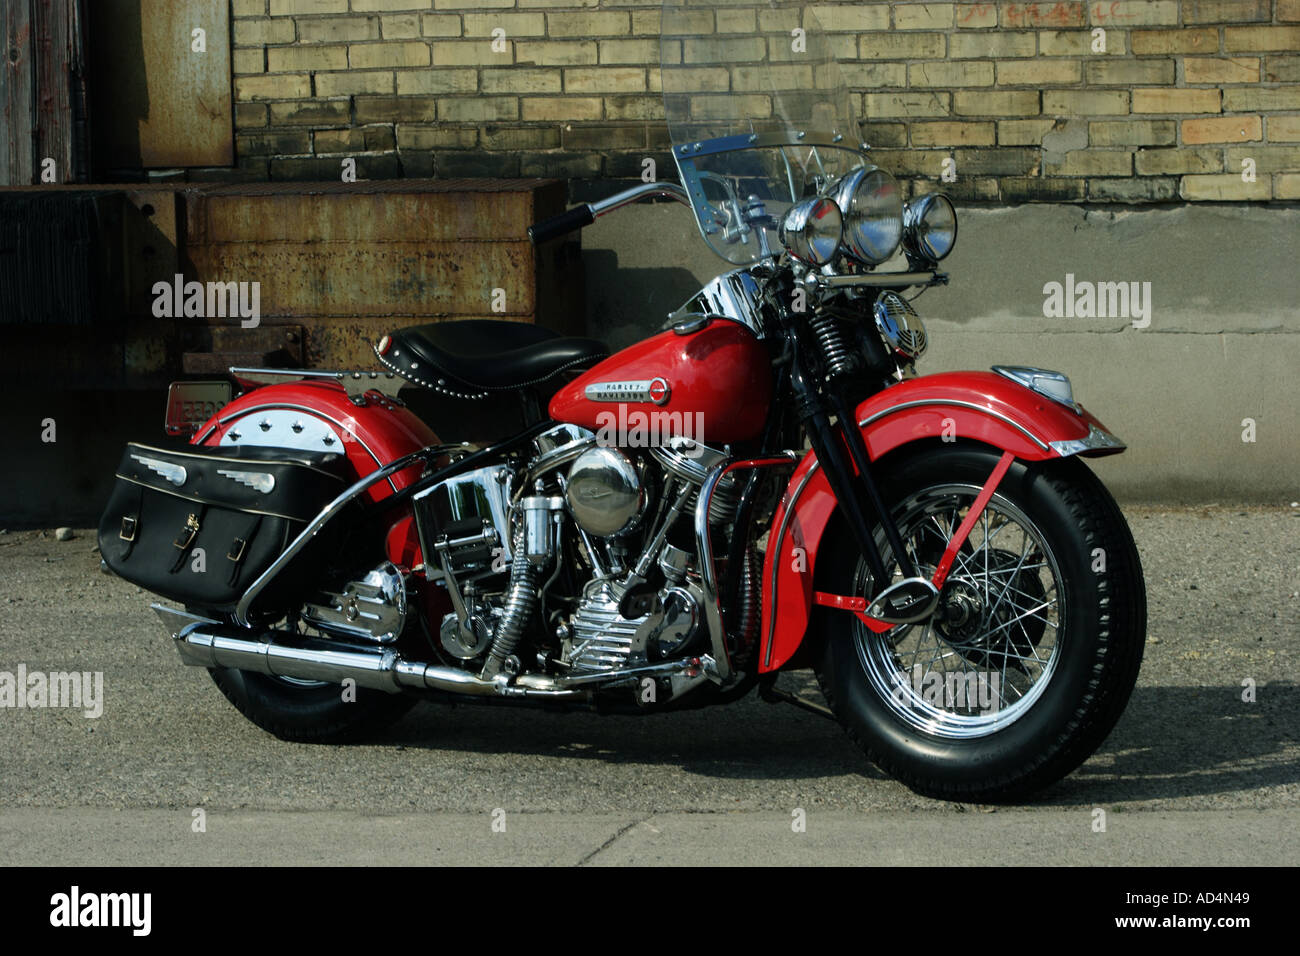 1948 Harley Davidson FL Stock Photo, Royalty Free Image